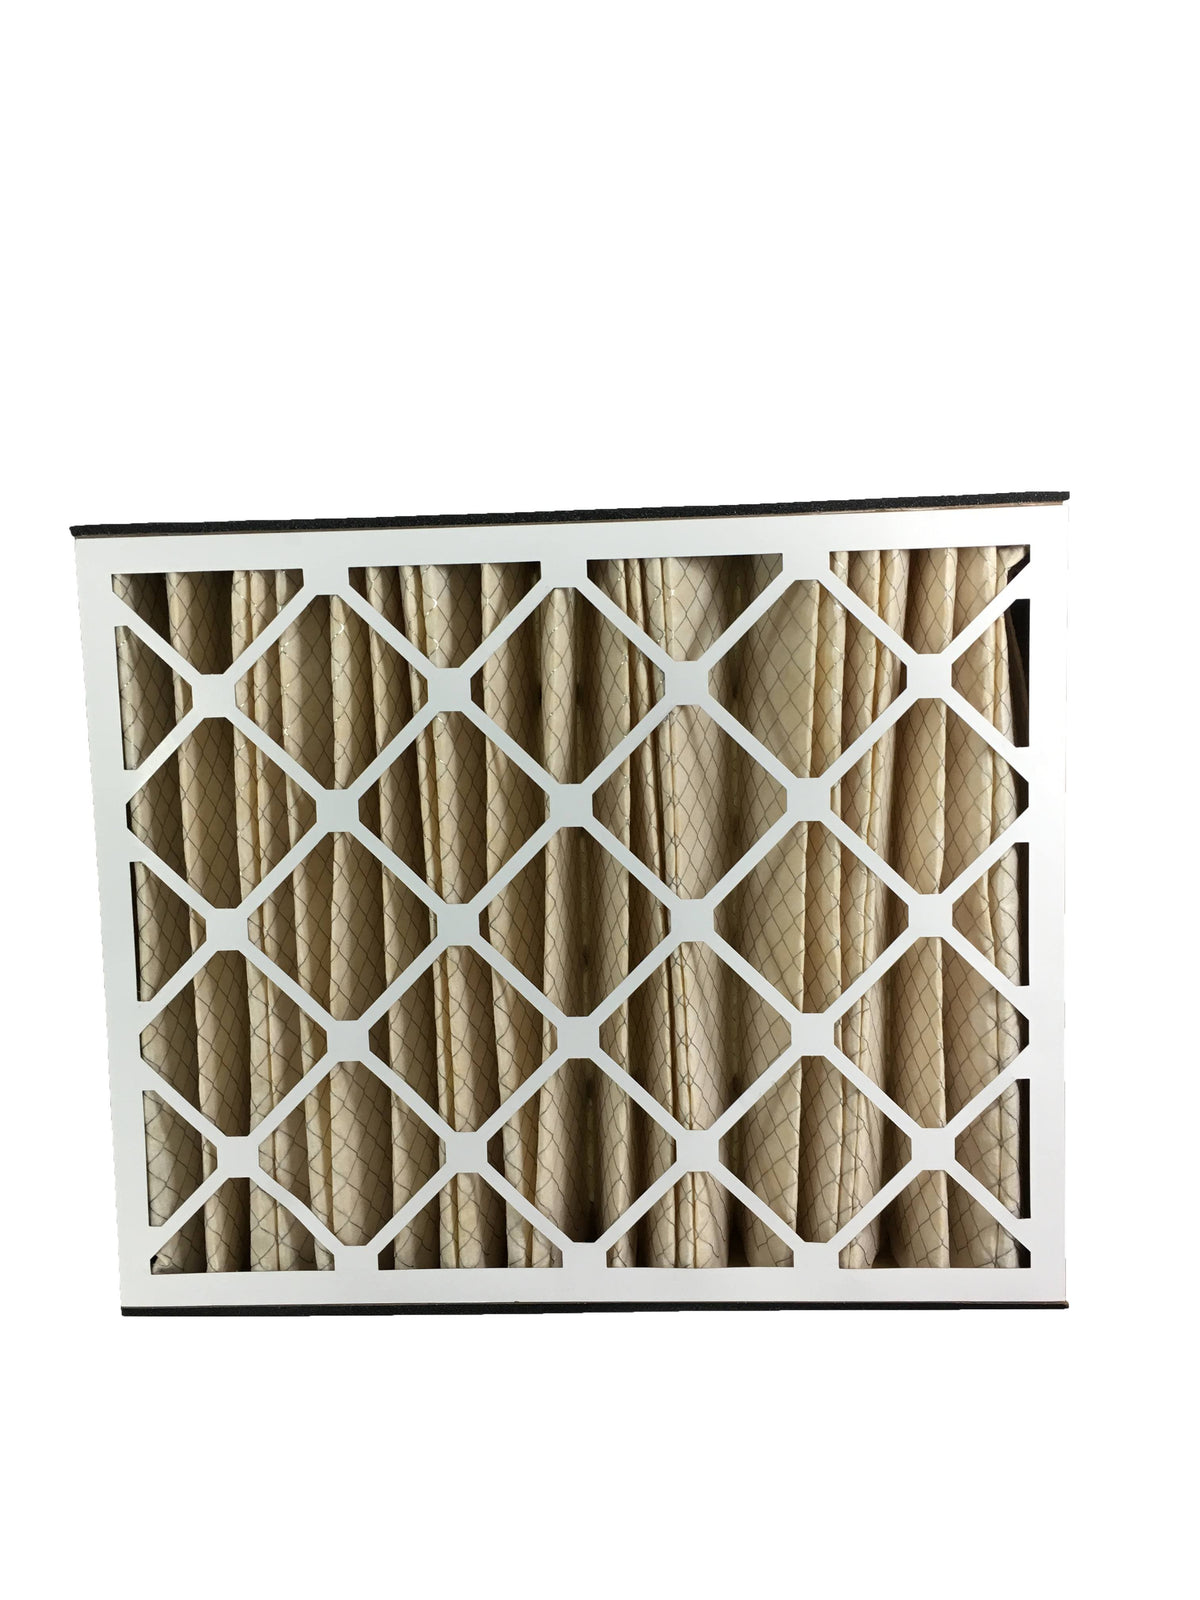 Ultravation 91-006 20x25x5 MERV 11 Replacement Furnace Filter - 1 Pack